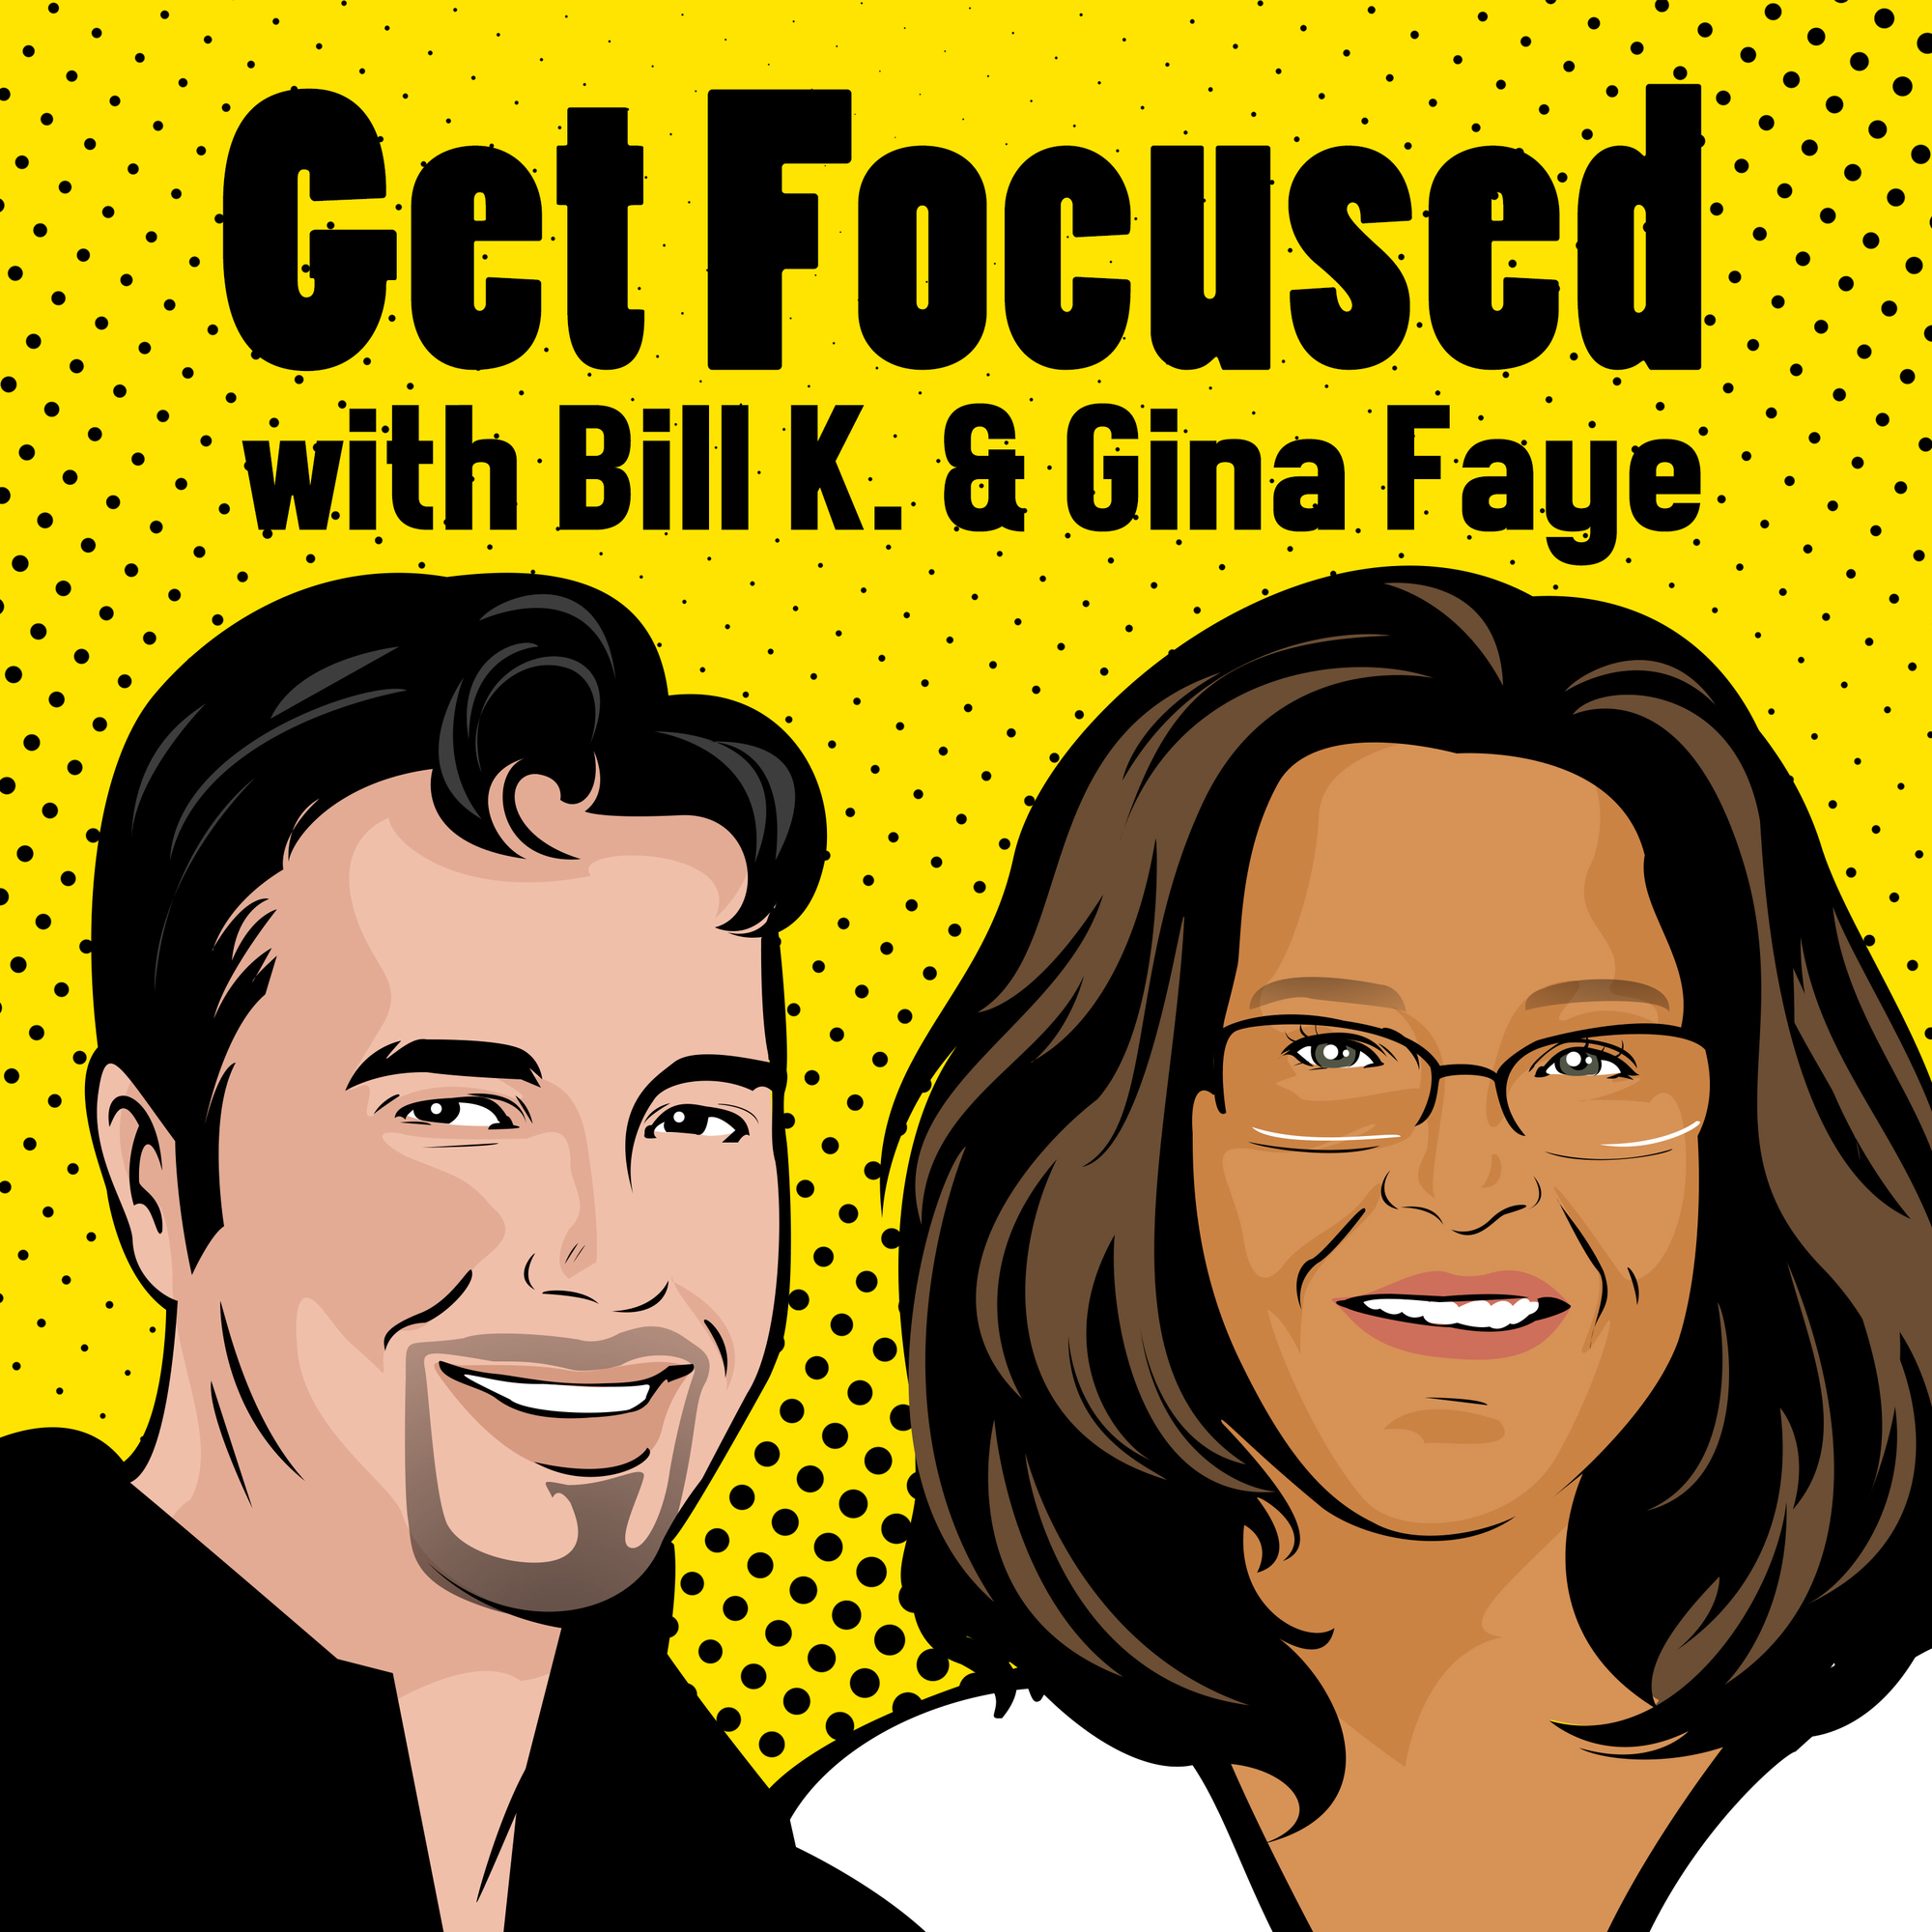 Get Focused with Bill K. & Gina Faye